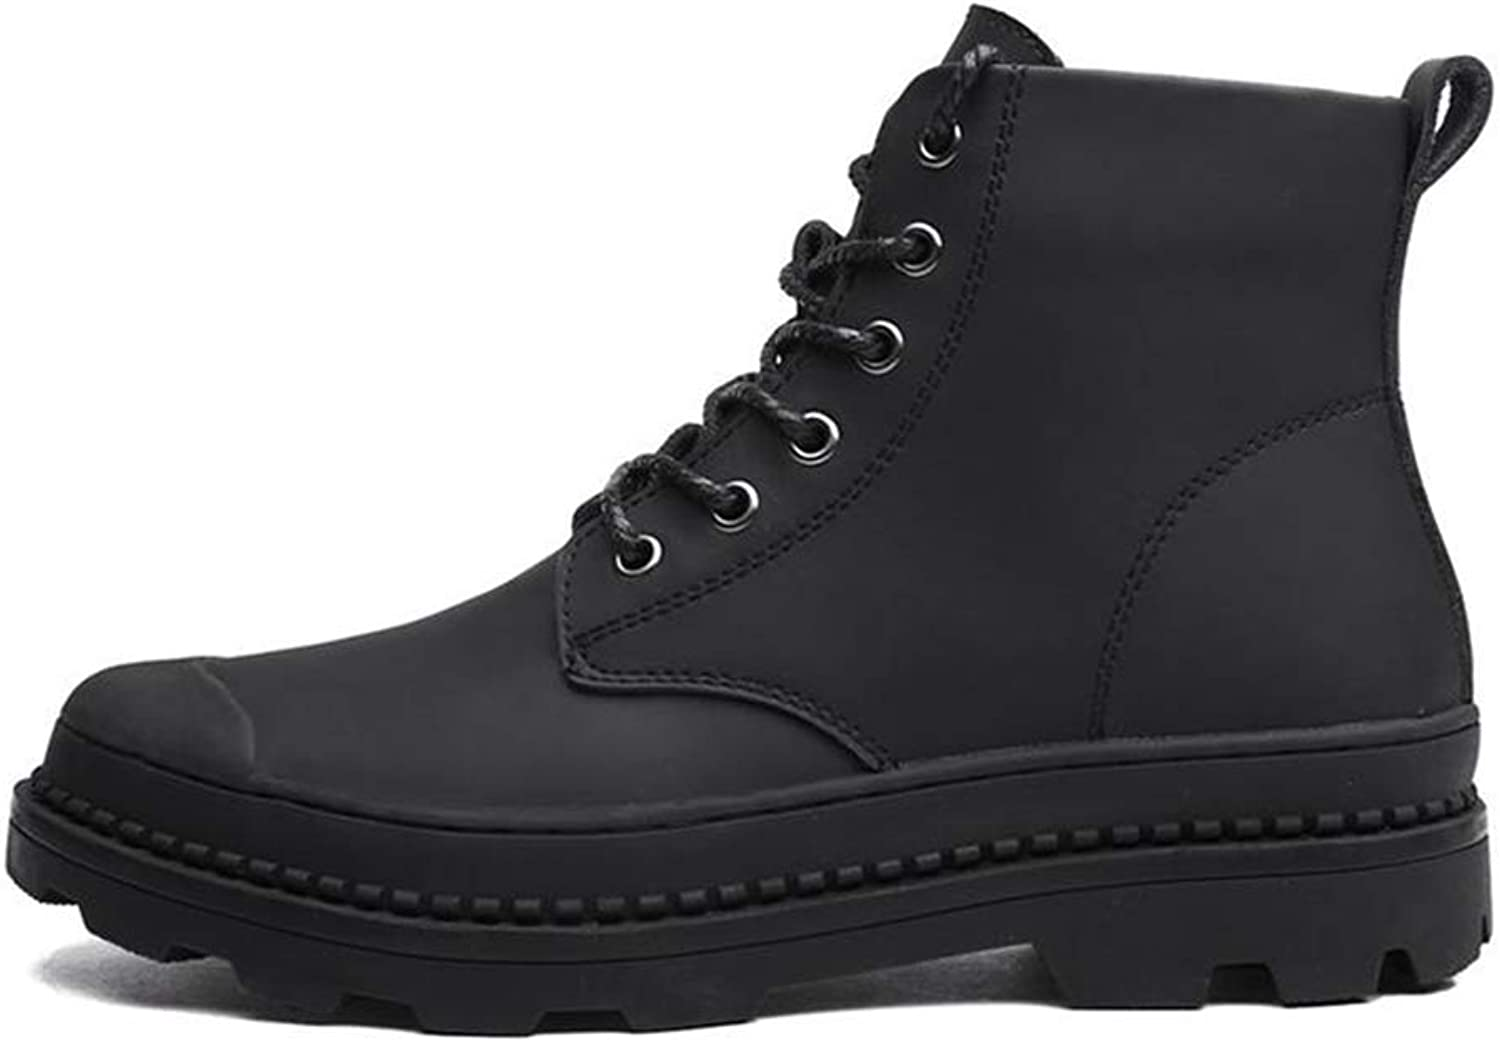 Autumn Martin Boots Men Mid-Calf Genuine Leather shoes Men's Lace-Up Winter Boot